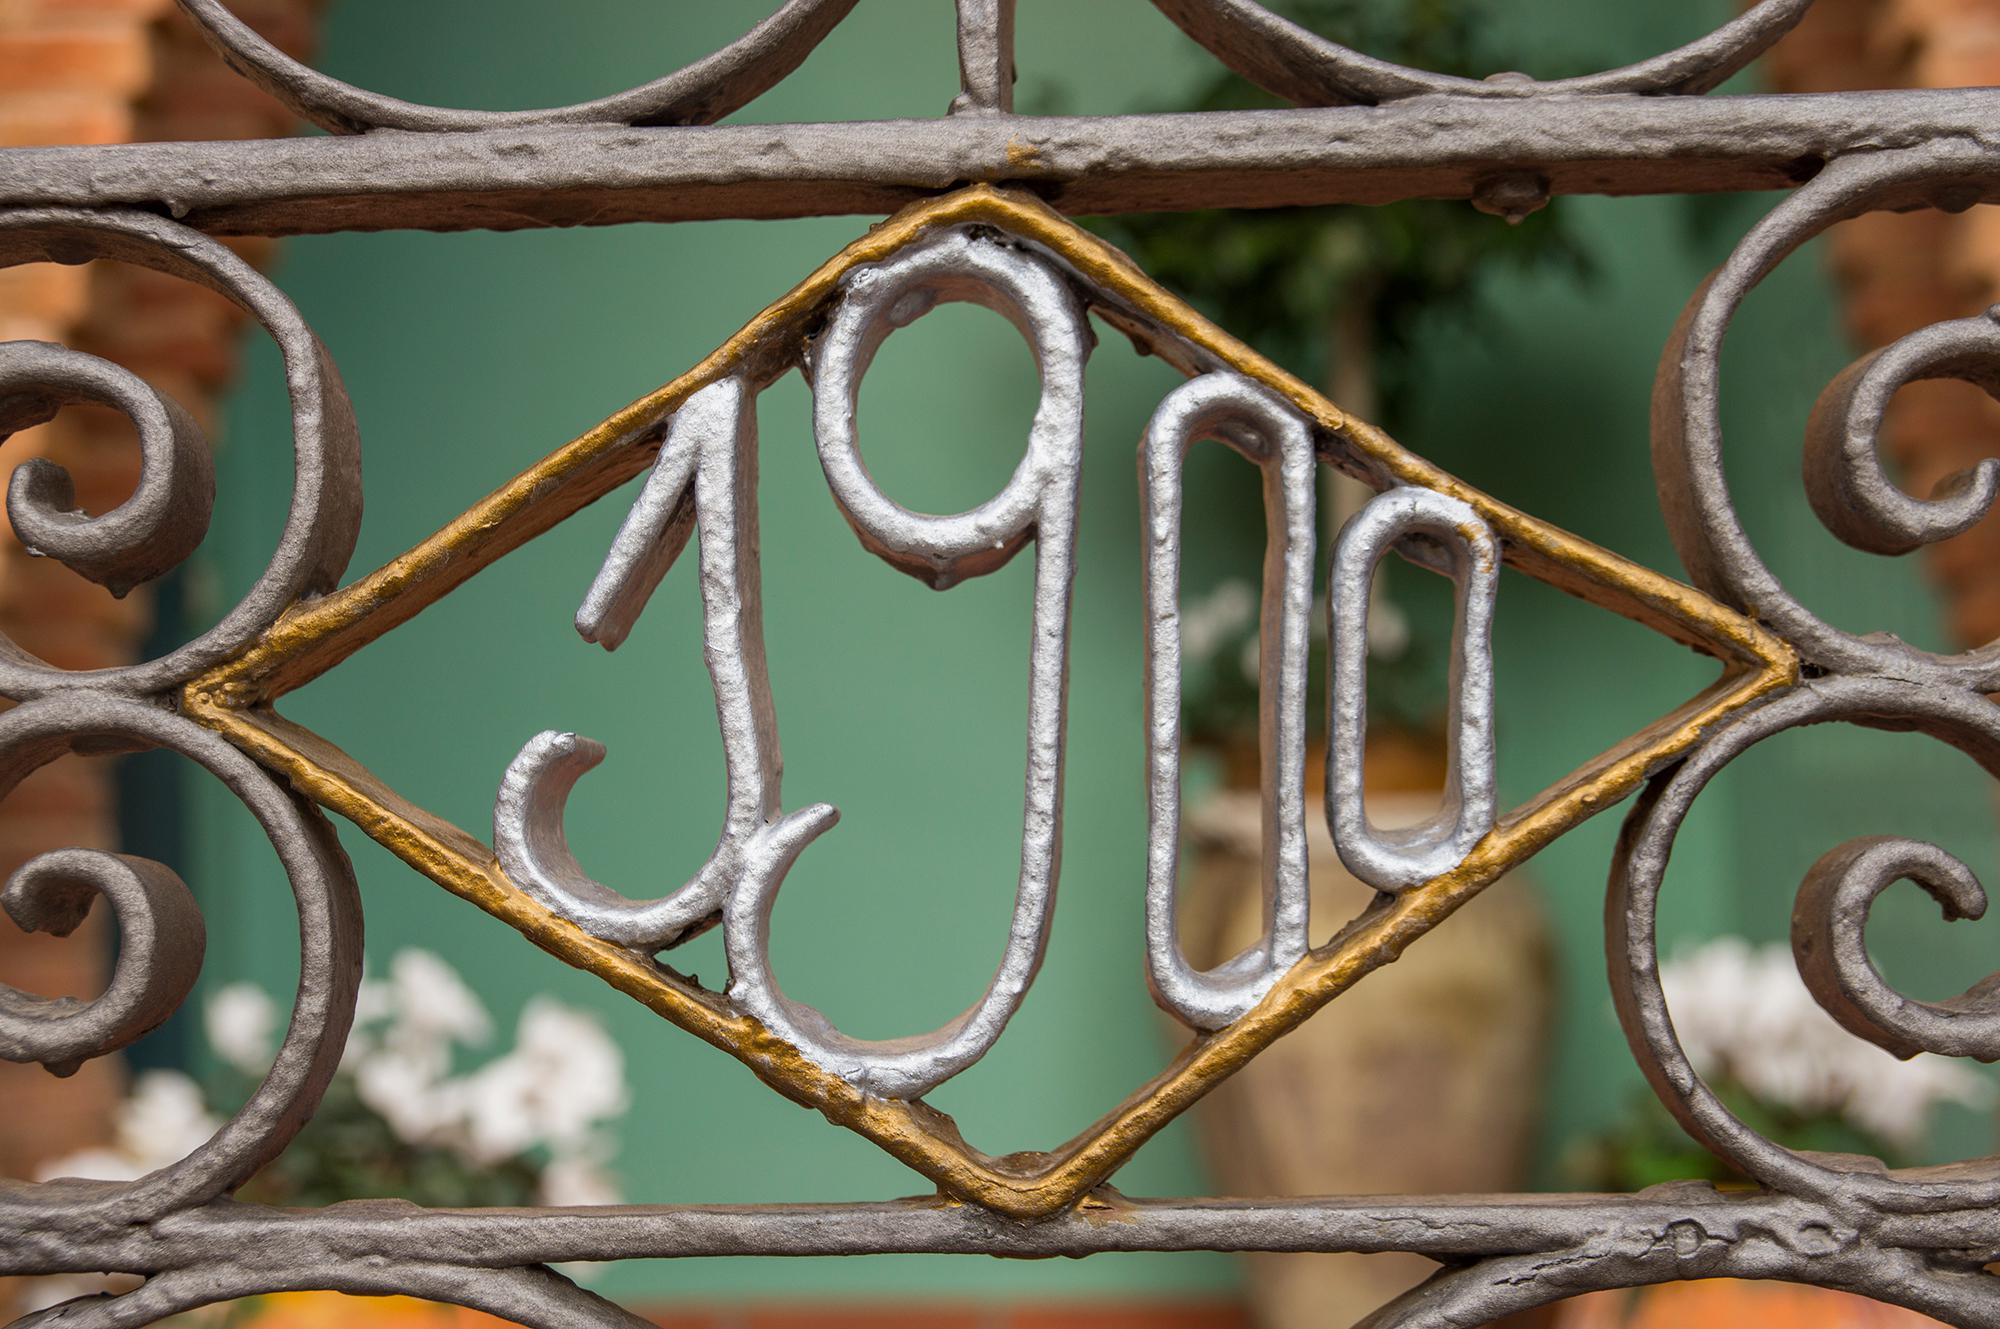 Wrought iron gate in Colonia Guell in Catalunya